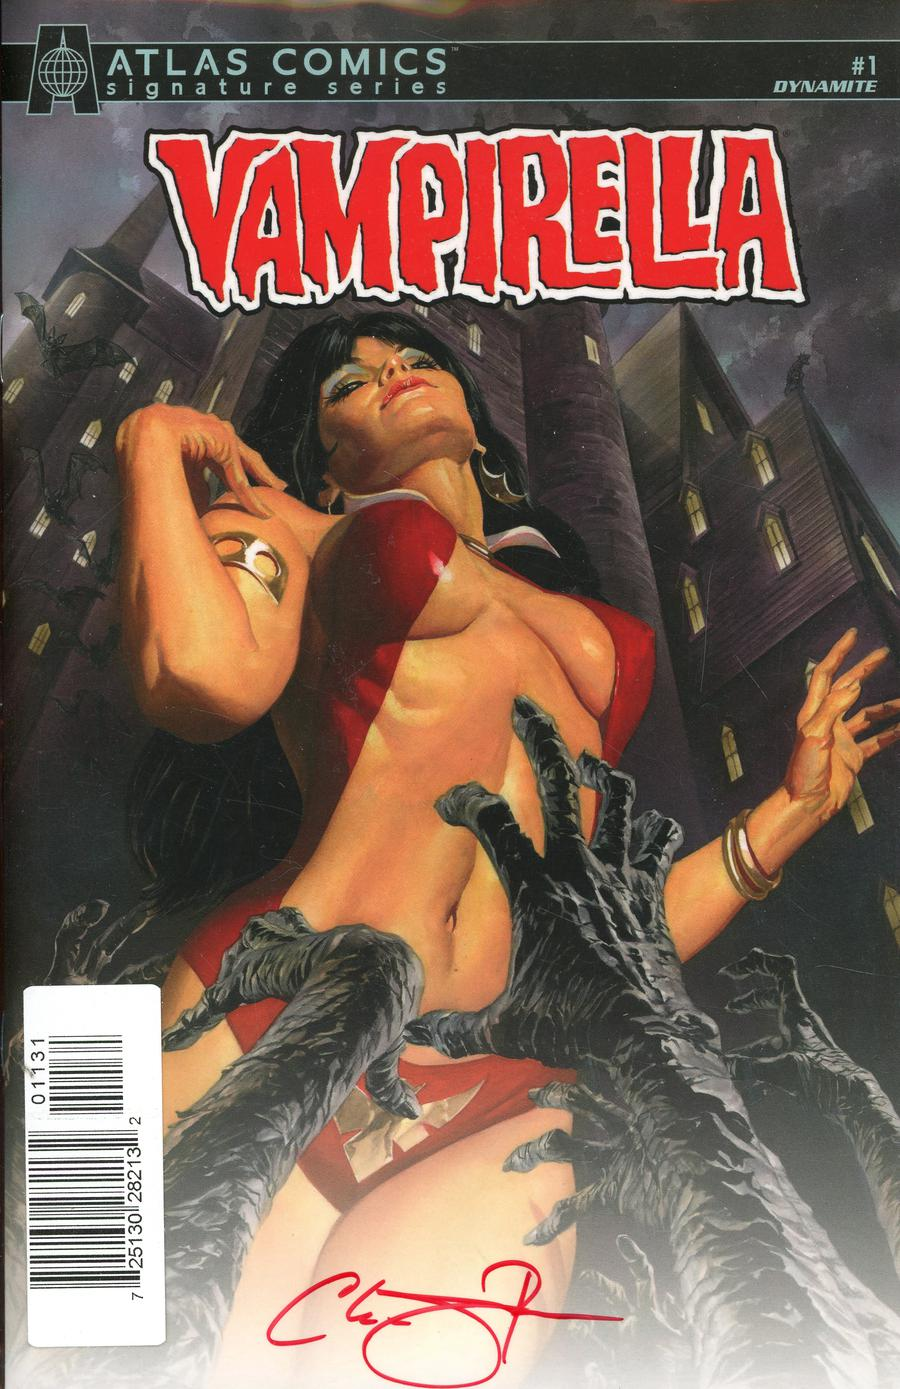 Vampirella Vol 8 #1 Cover Q Atlas Comics Signature Series Signed By Christopher Priest